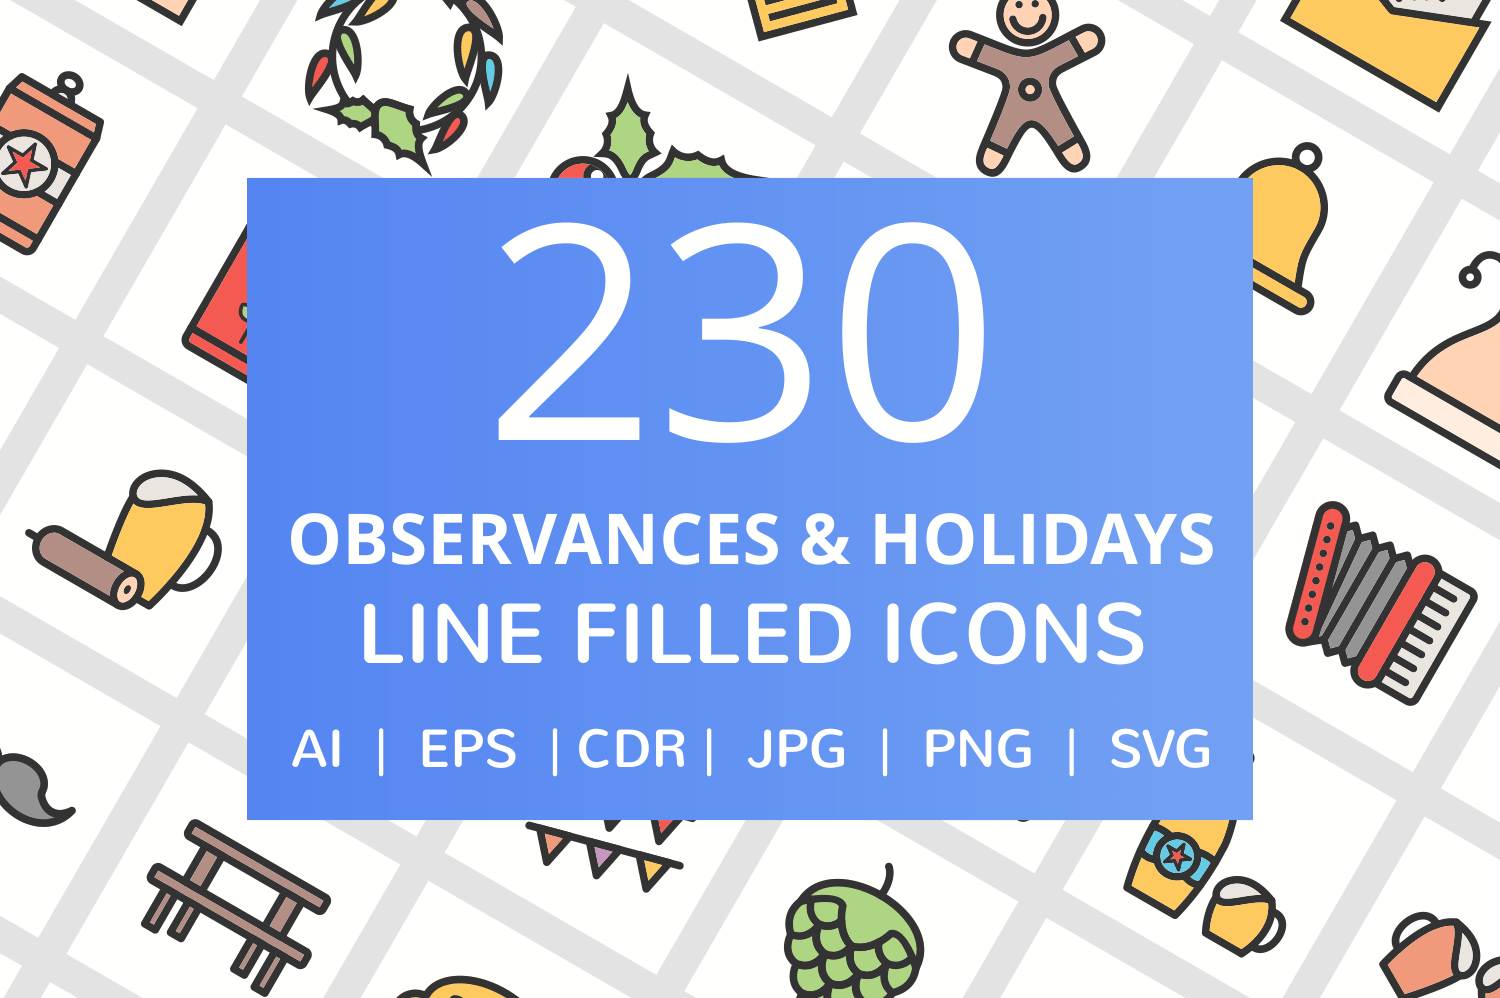 230 Observances & Holiday Filled Line Icons example image 1